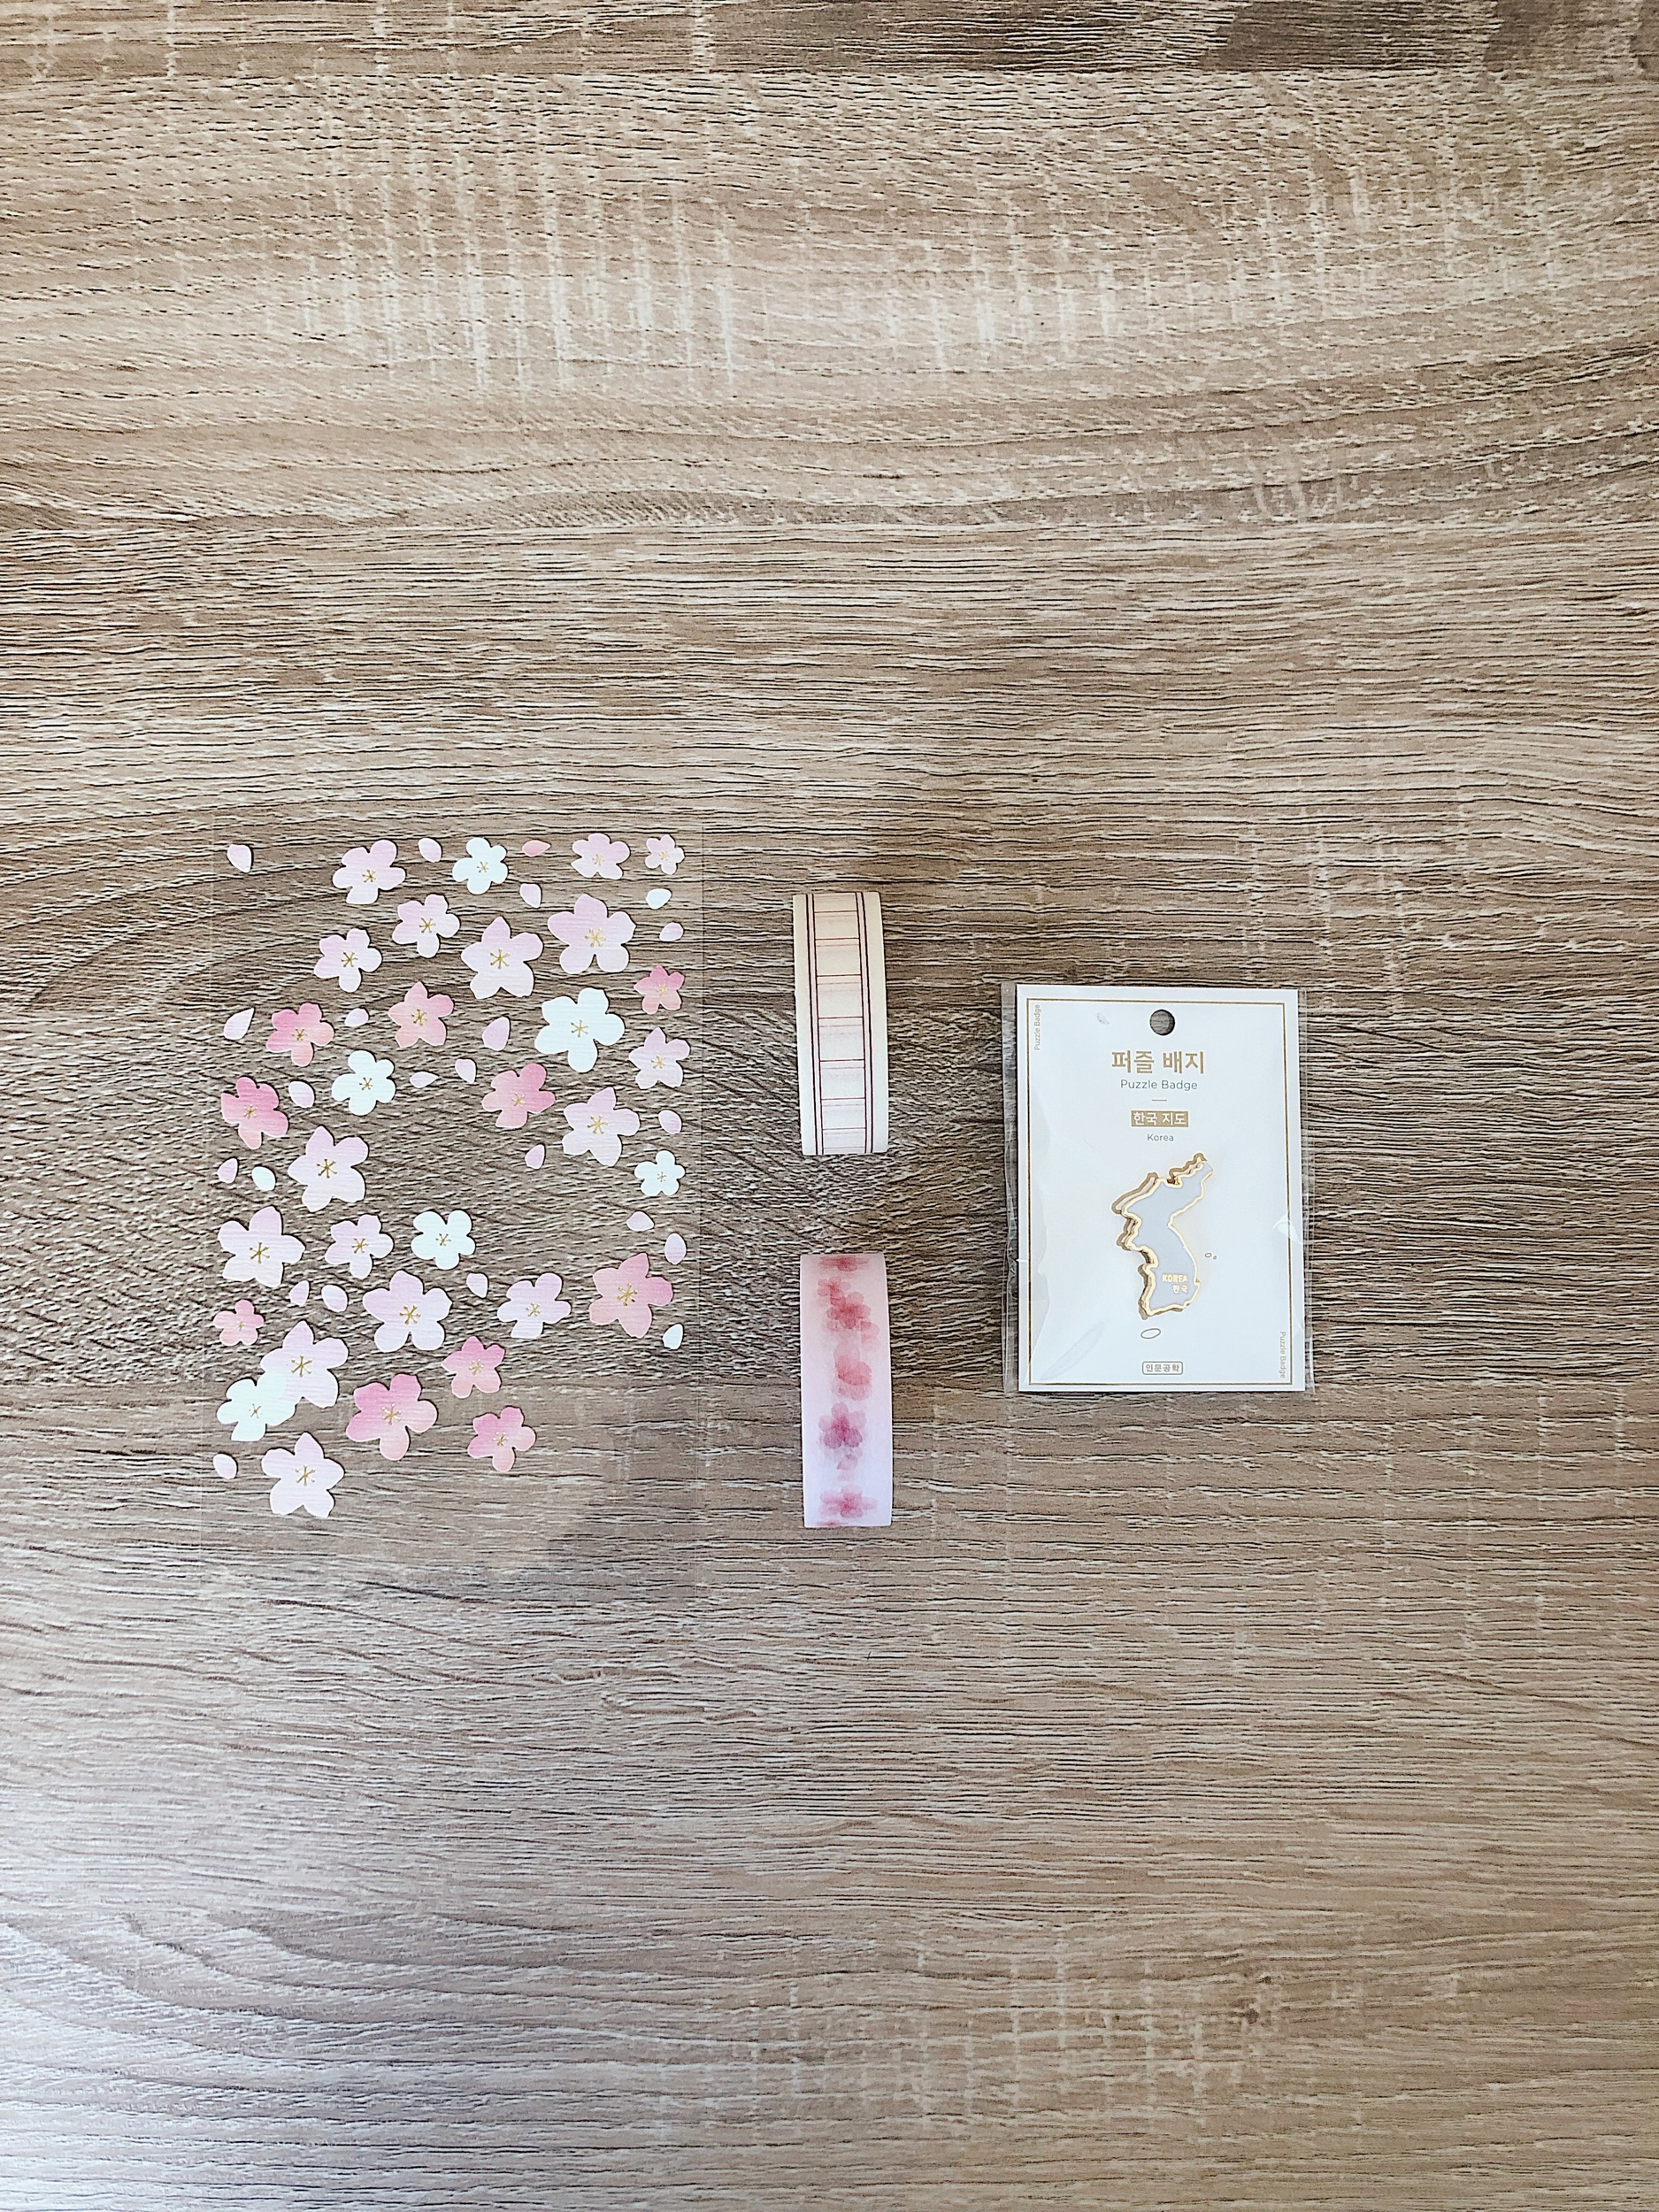 Left to right: cherry blossom stickers/masking tape and writing pad masking tape from Artbox, South Korea pin by Inmoongonghak